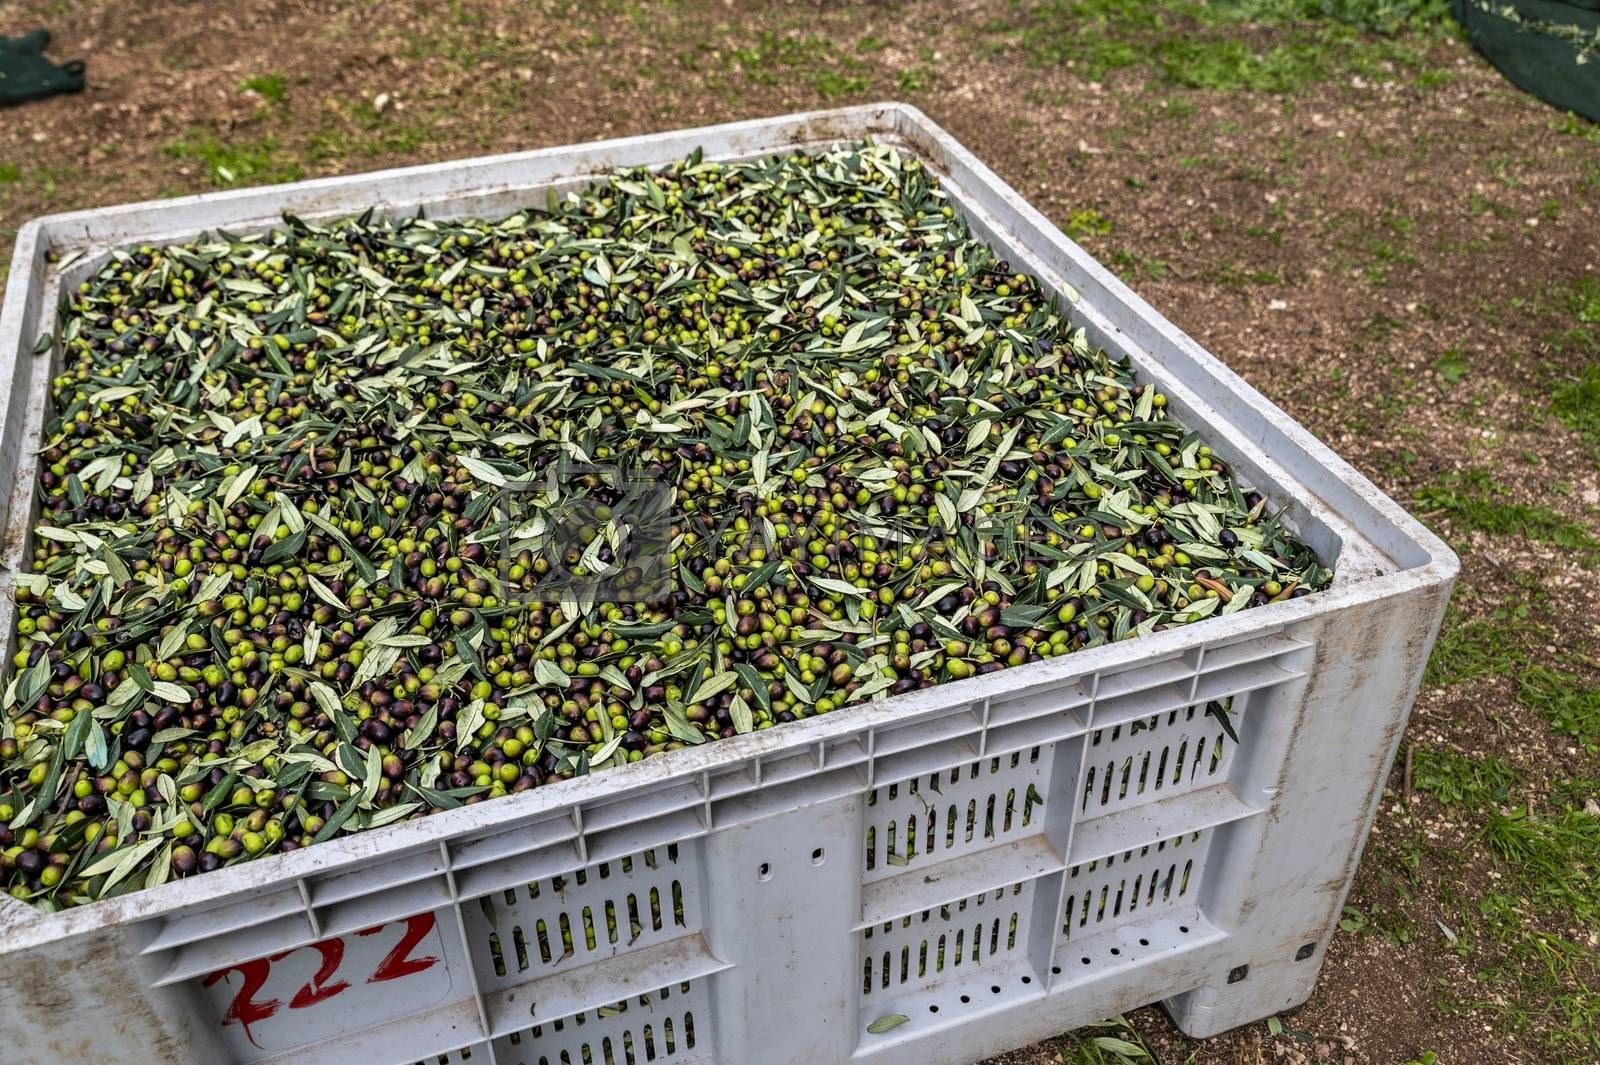 freshly picked olive deposited in the box with leaf residues